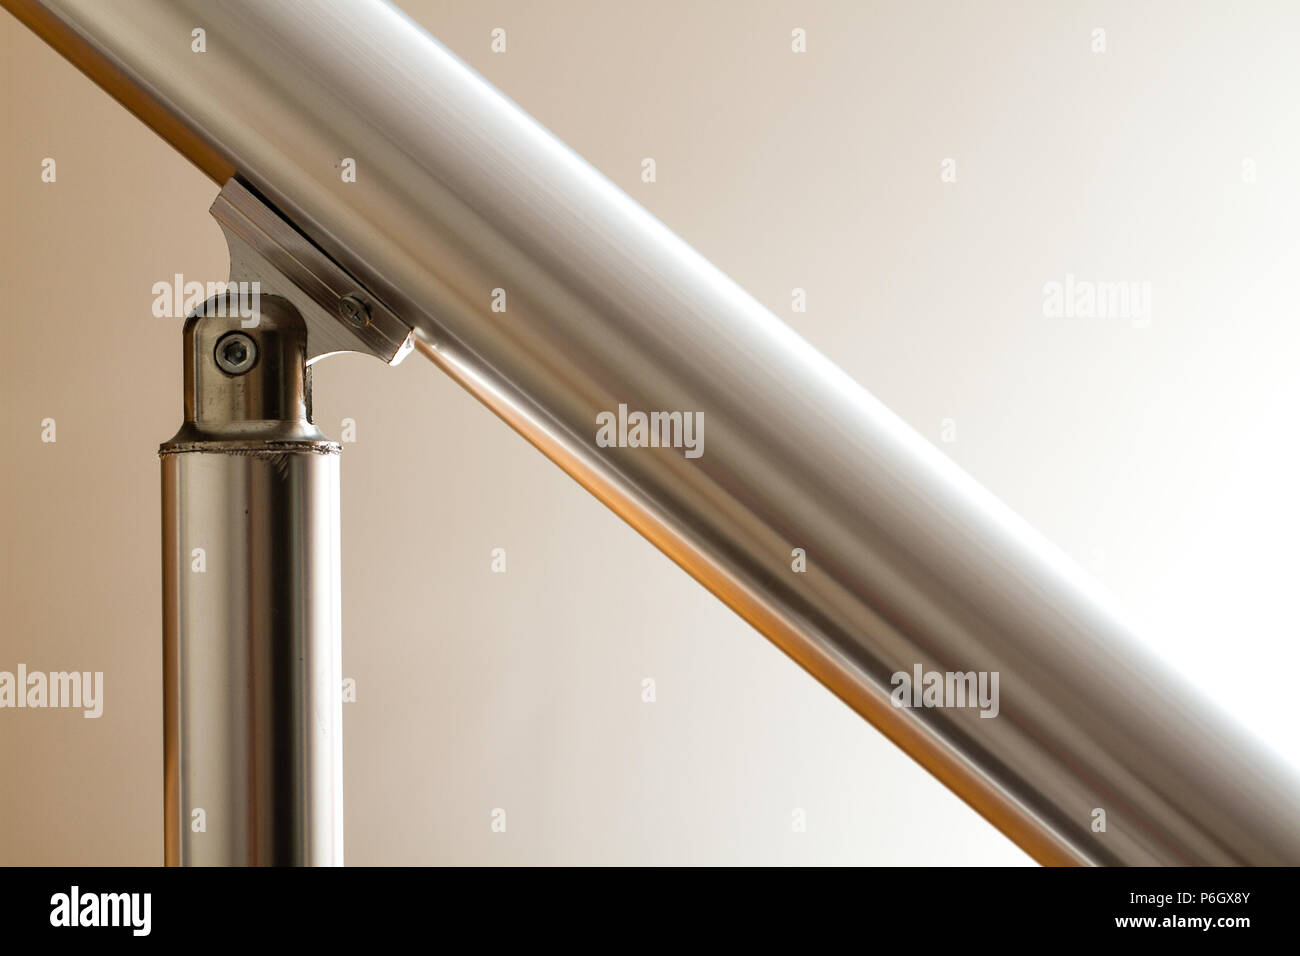 View of aluminium stair railing and joint element - Stock Image